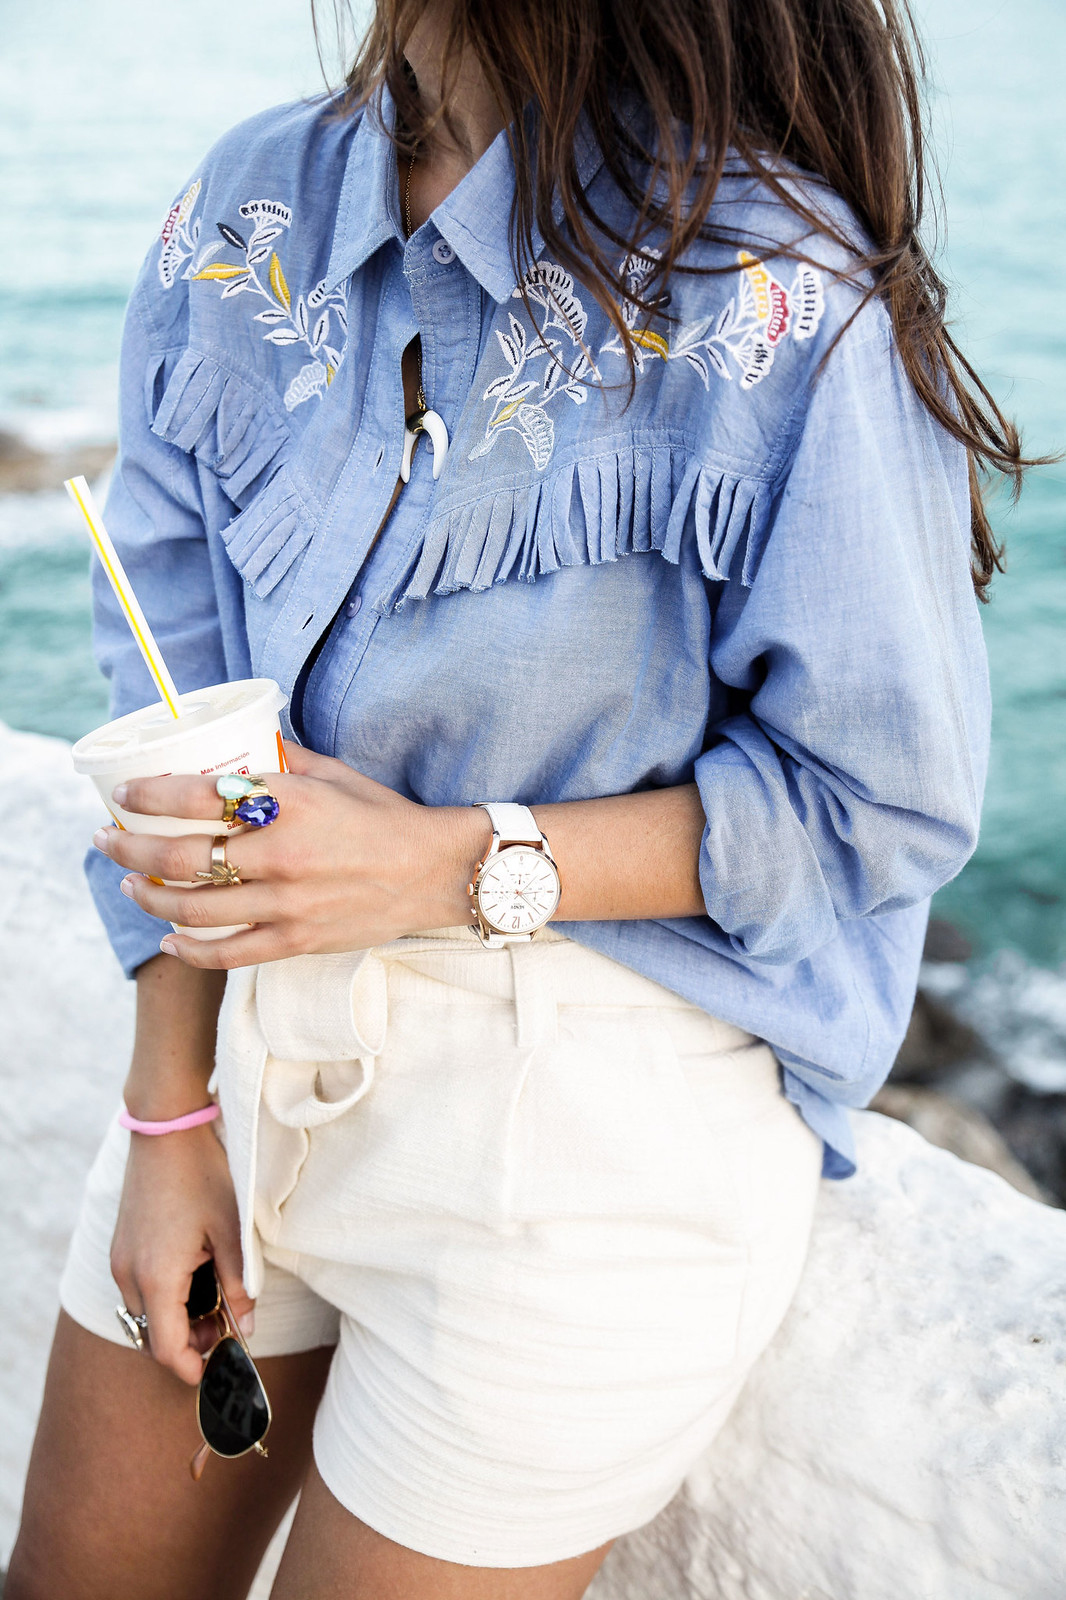 01_camisa_flecos_azul_mysundaymorning_fringed_shirt_fringed_theguestgirl_influencer_inspo_outft_summer_laura_santolaria_public_desire_denim_shoes_mc_donalds